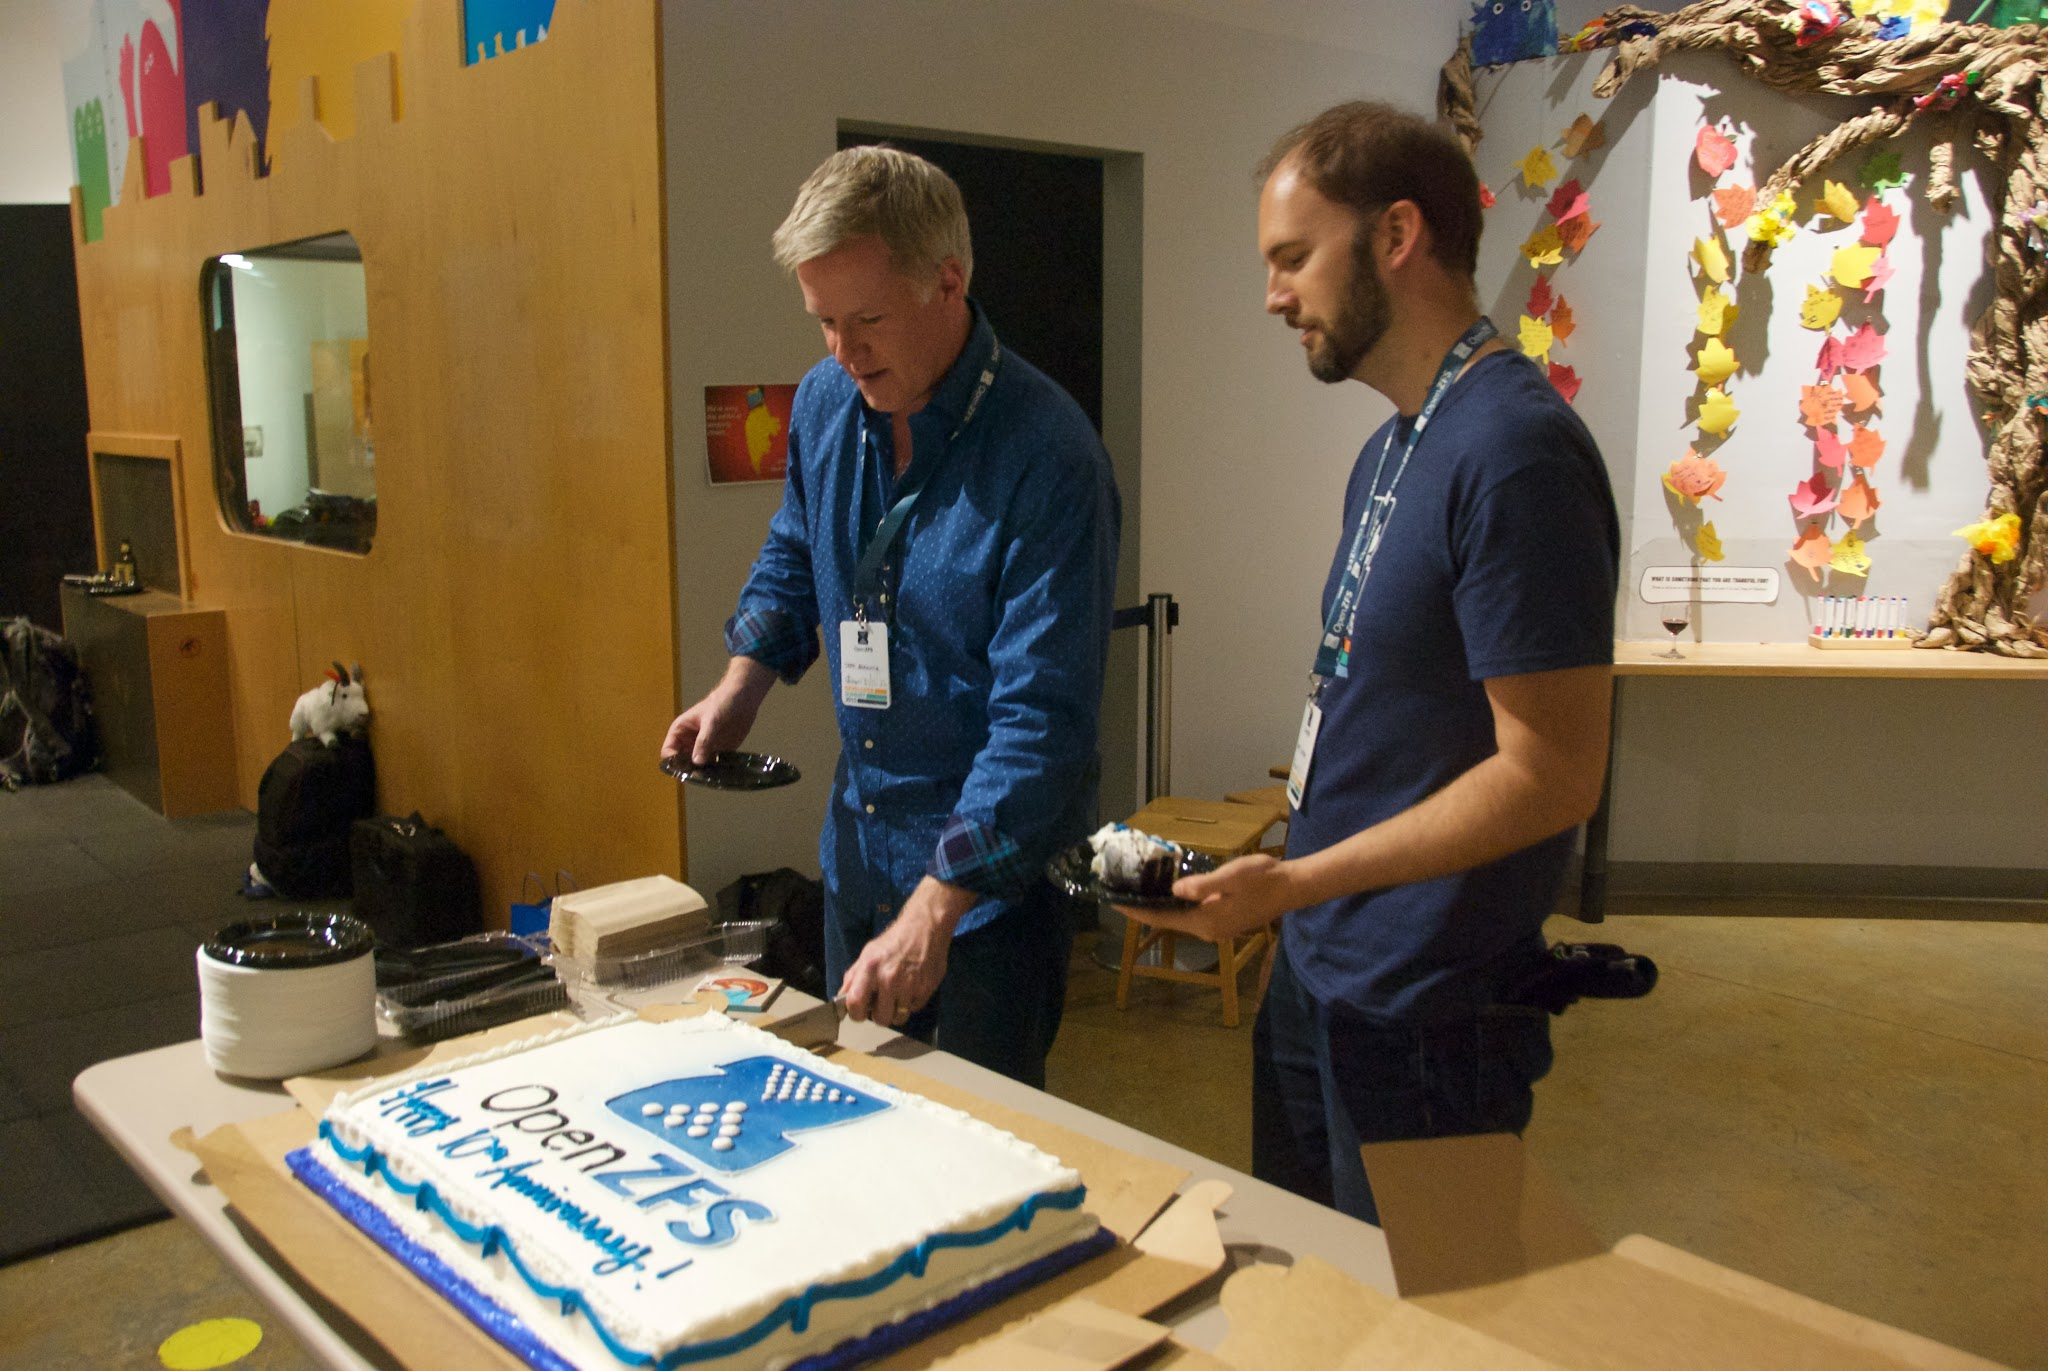 This event was also an opportunity to celebrate OpenZFS's 10 year anniversary.